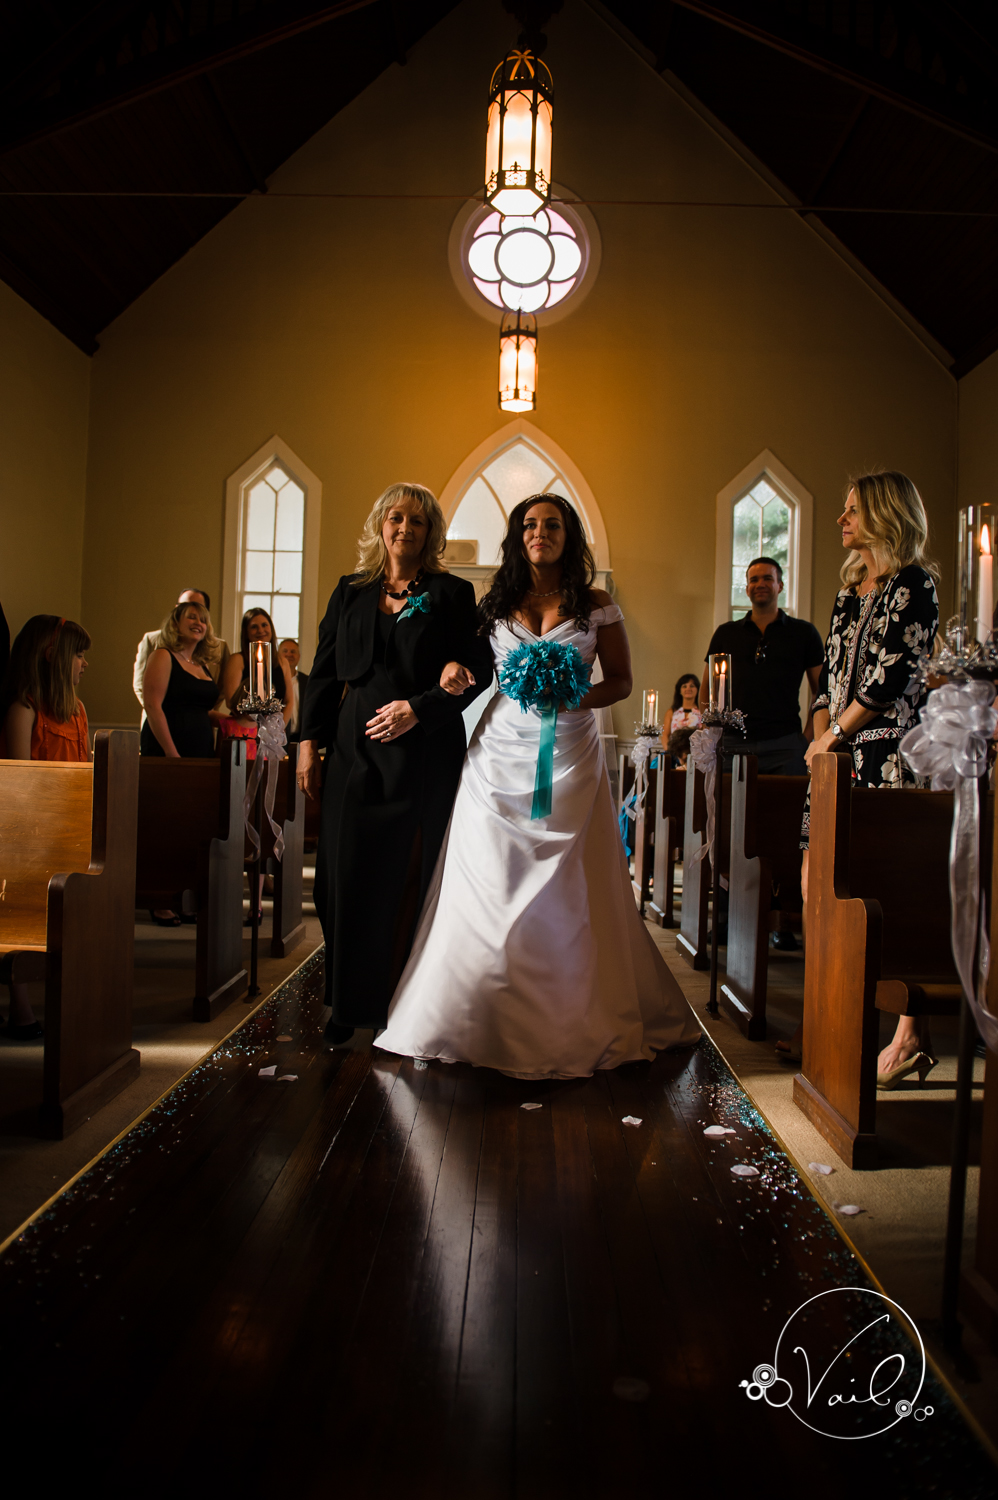 Belle Chapel Snohomish Wedding photographs by Vail Studio-28.jpg